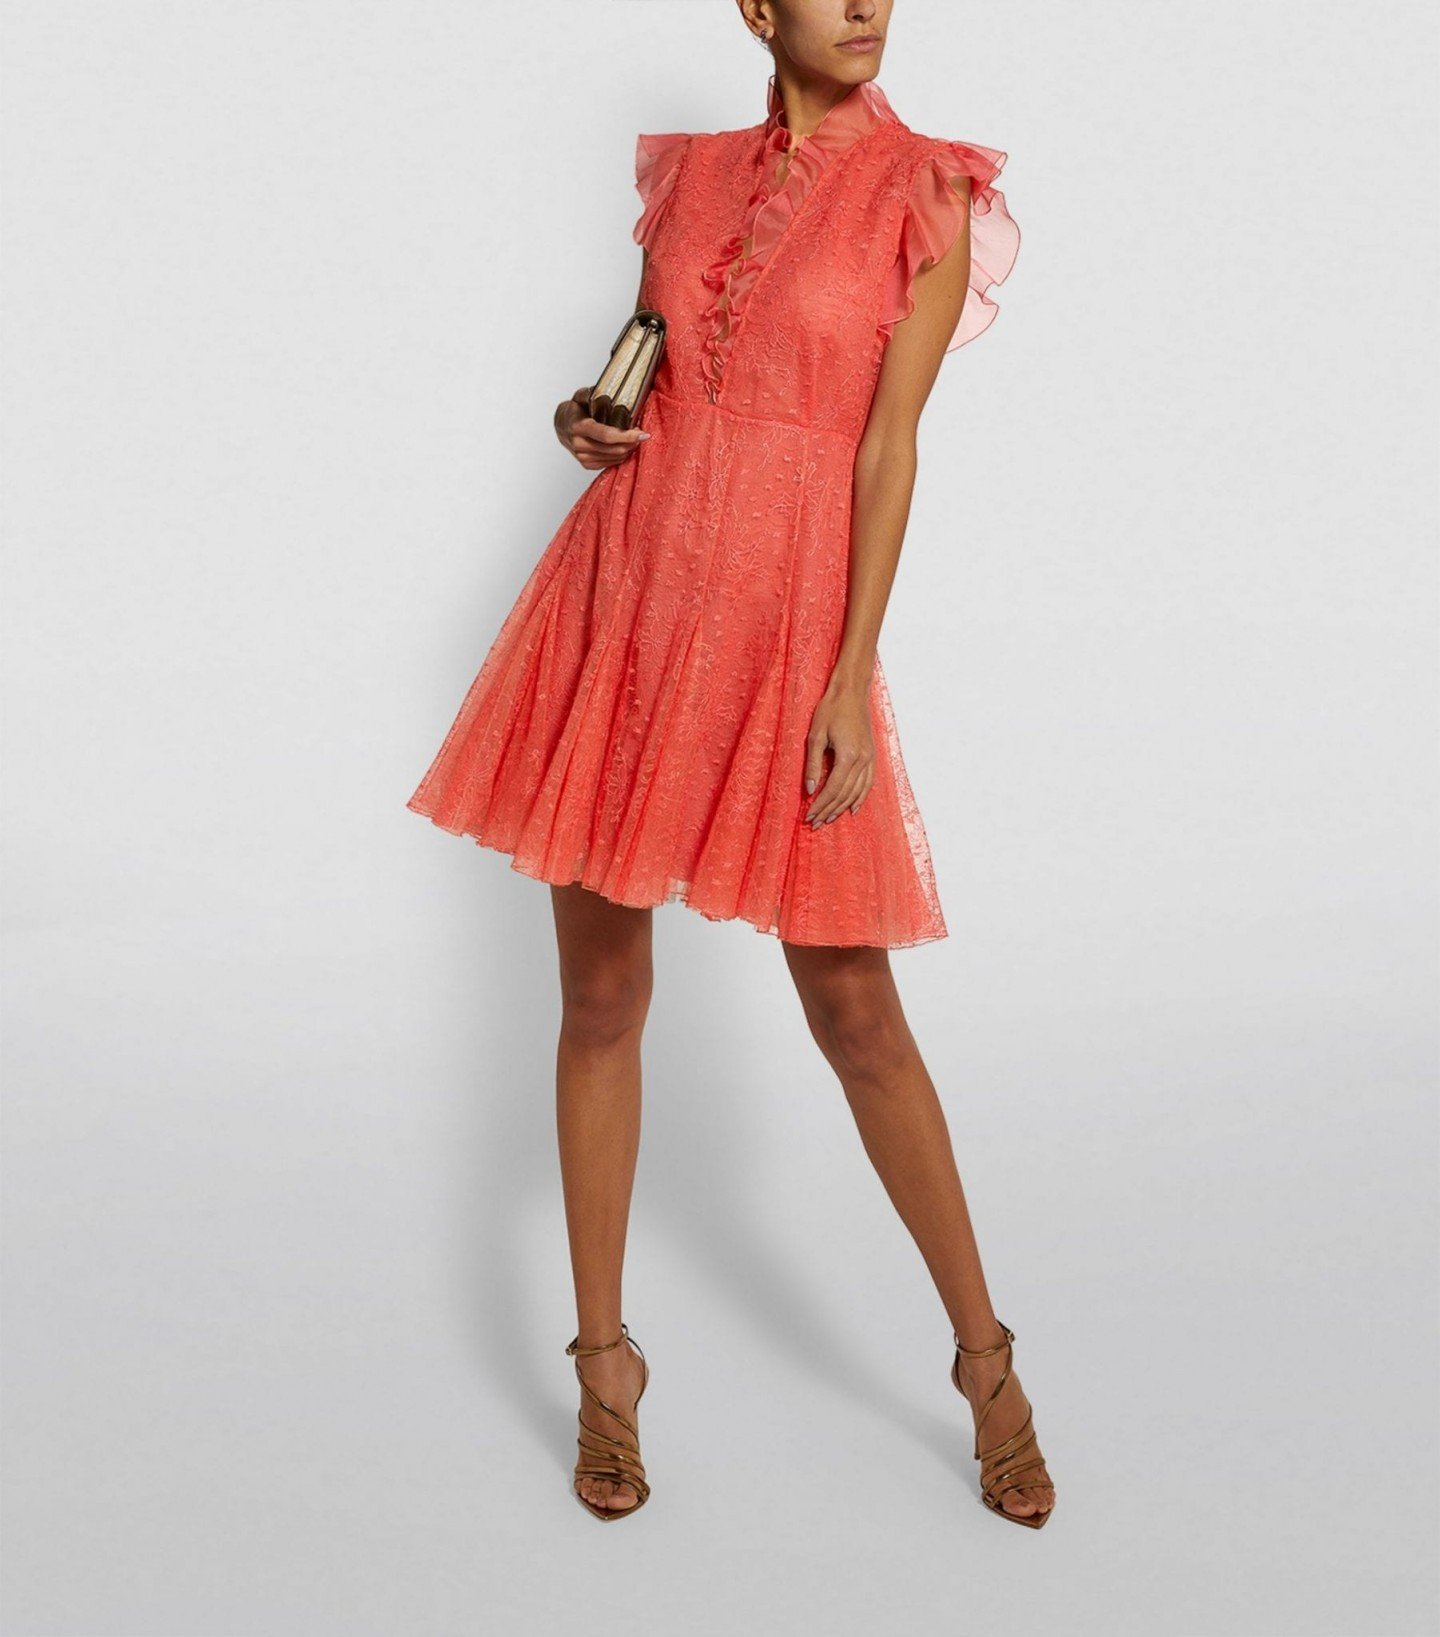 GIAMBATTISTA VALLI Floral Lace Ruffle Mini Dress